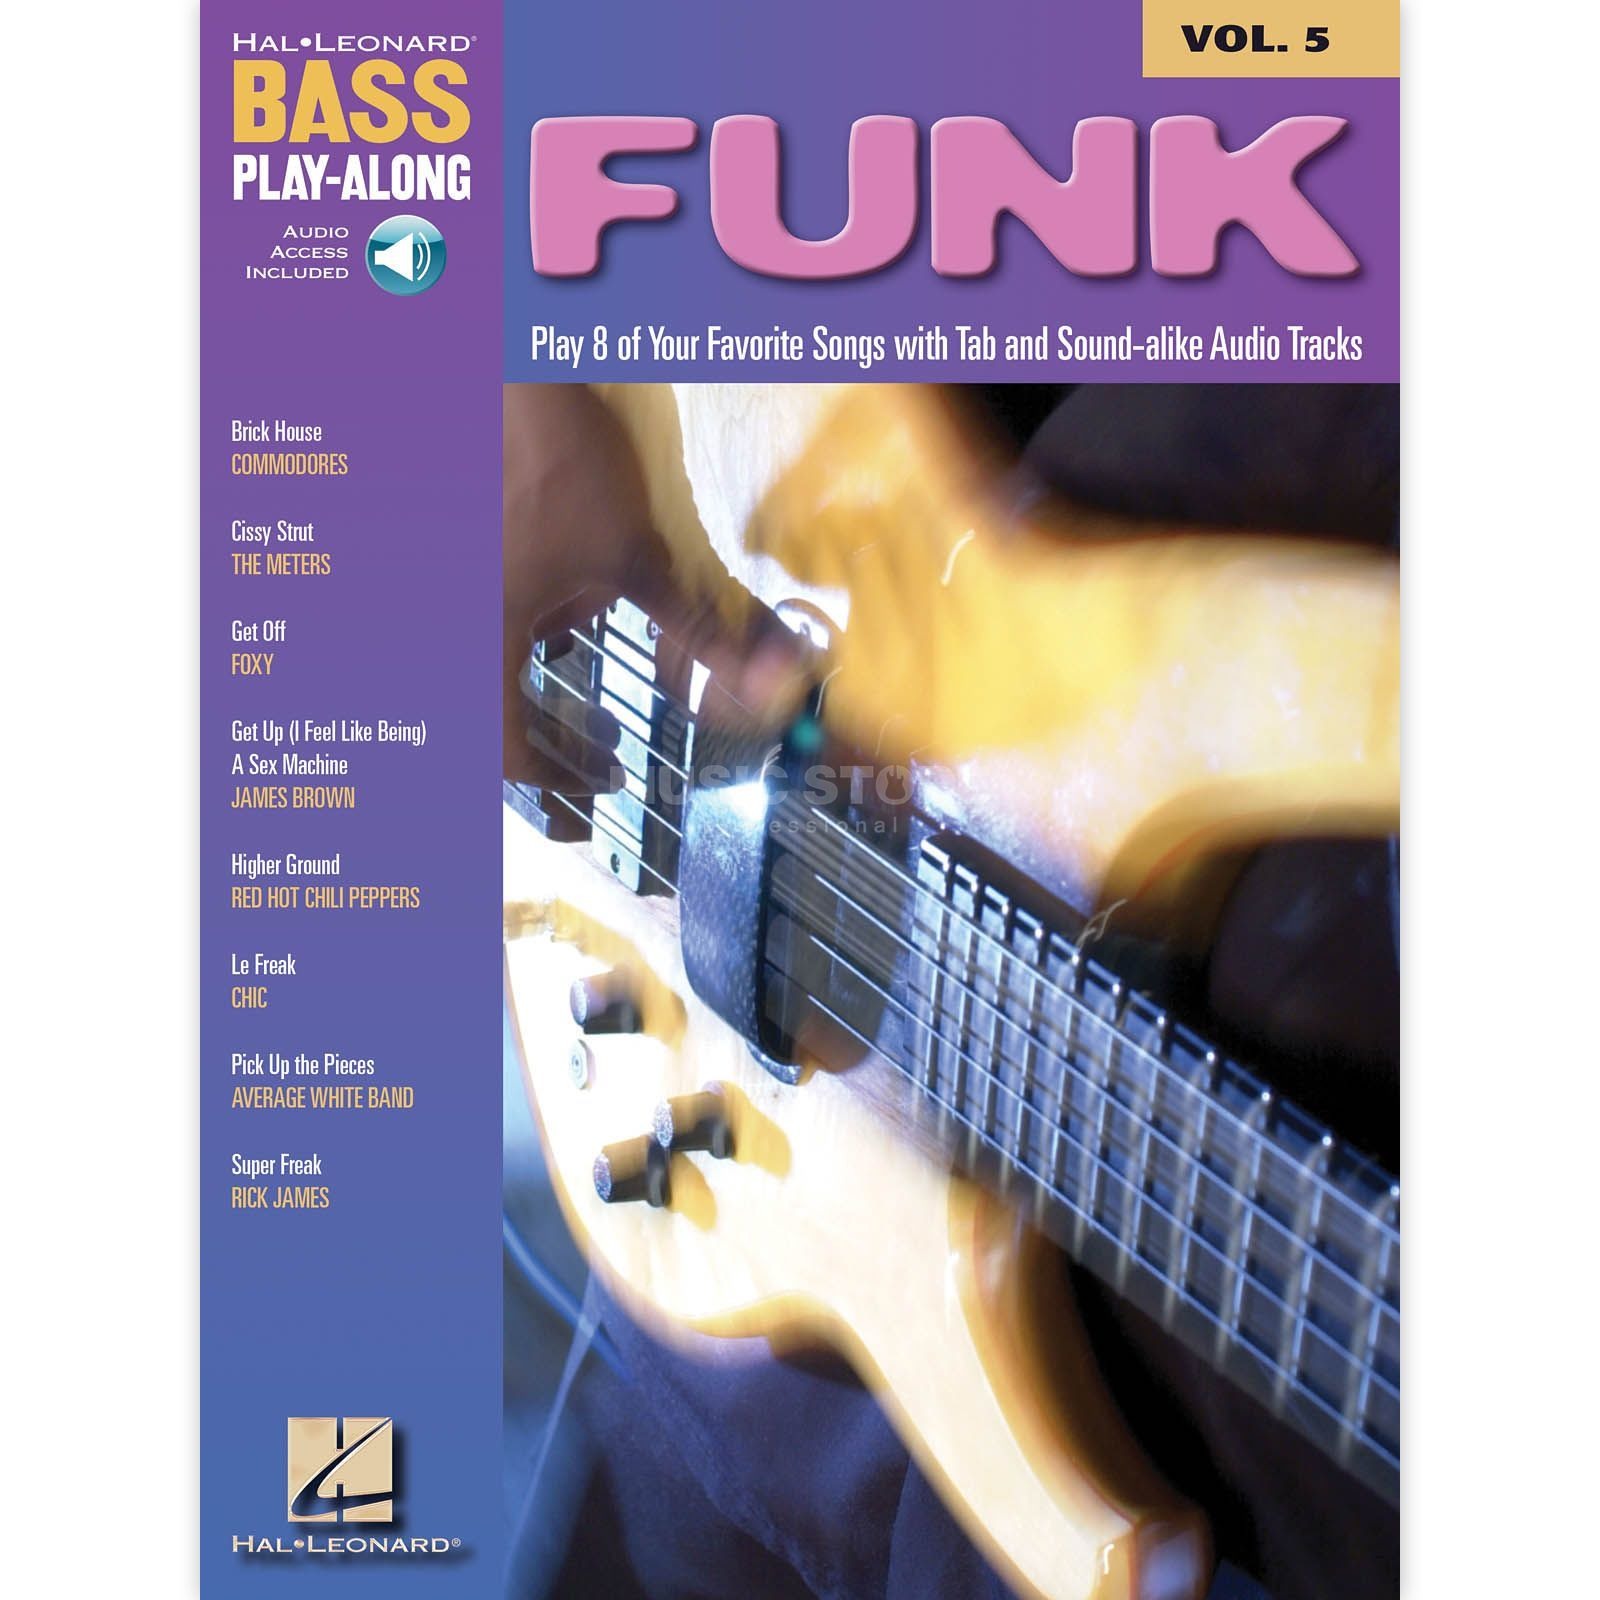 Hal Leonard Bass Play-Along - Funk Vol. 5, Bass TAB Produktbild